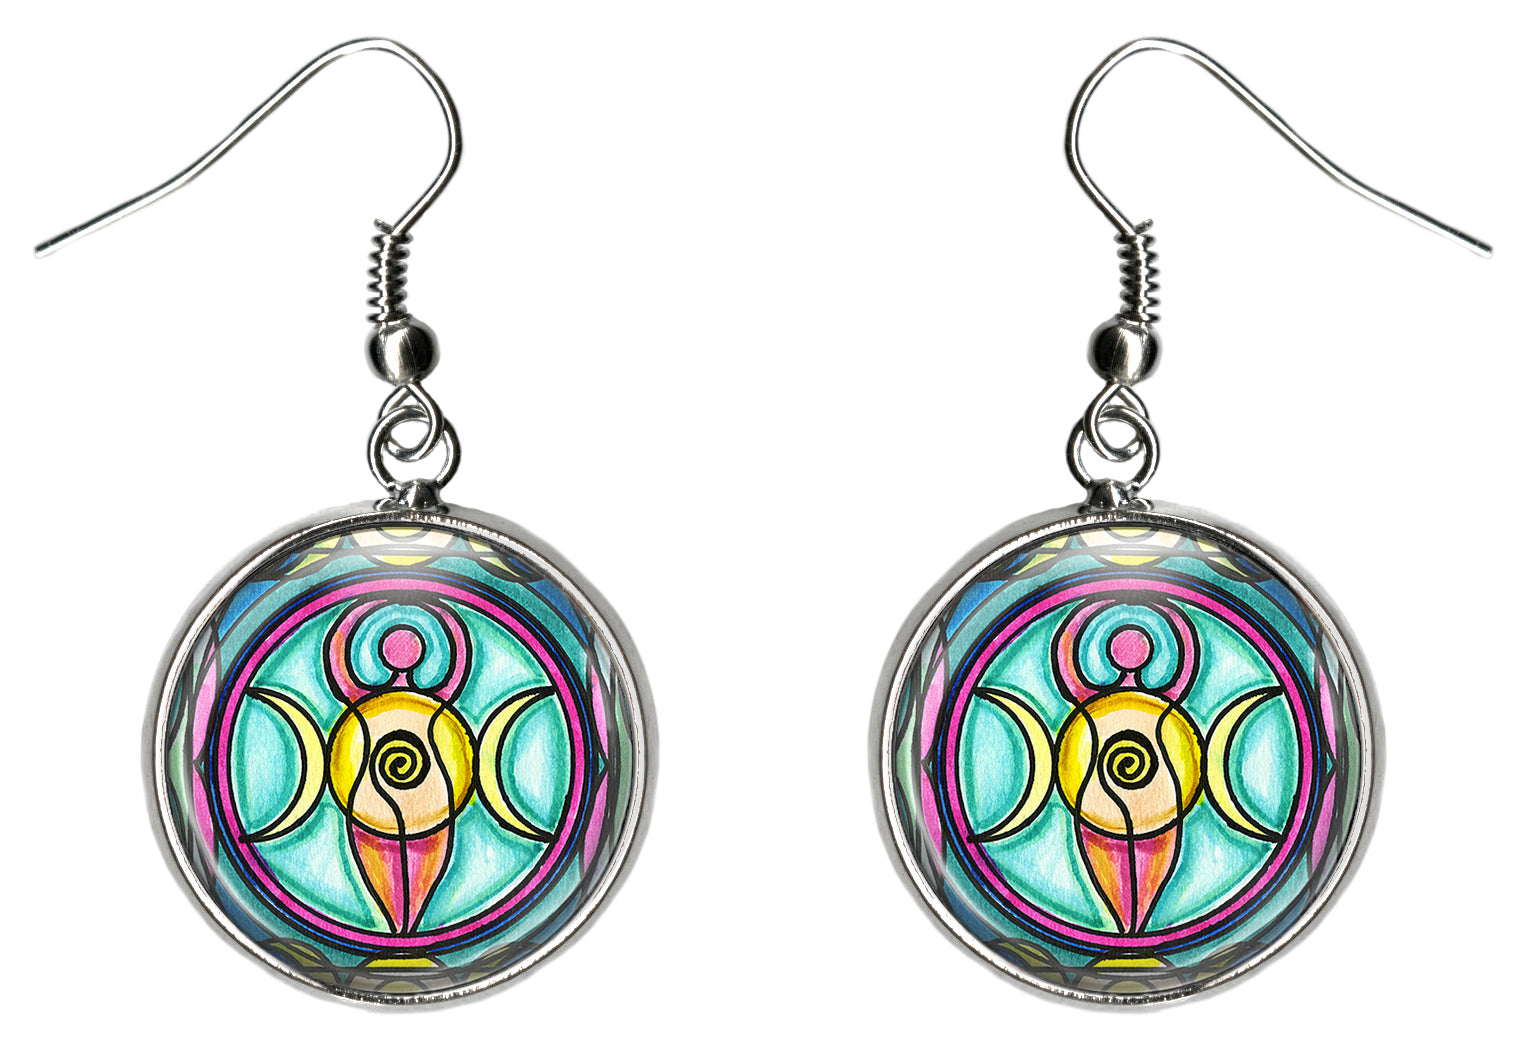 Triple Moon Goddess Silver Surgical Stainless Steel Hypoallergenic Earrings